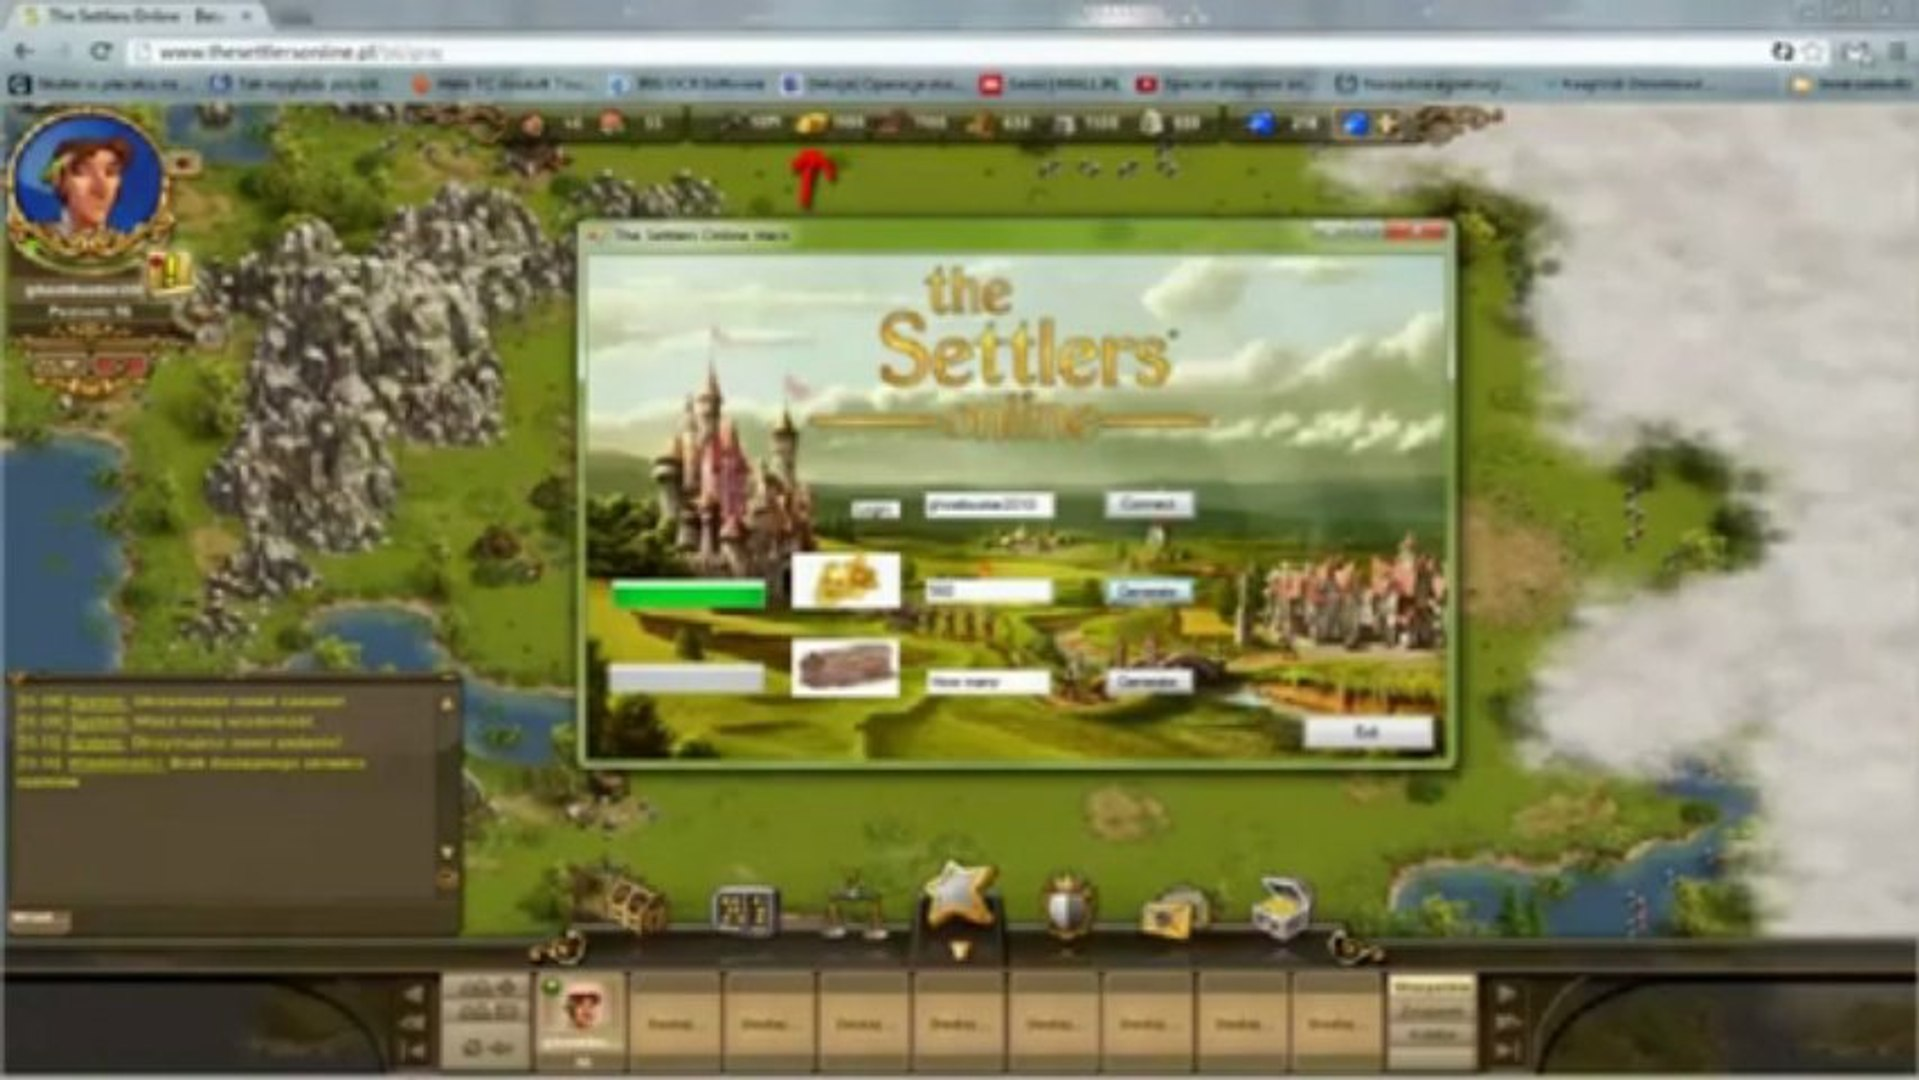 The Settlers Online Hack Generators - Stones Marble Planks Wood - Diamonds - Cheat Tools 2013